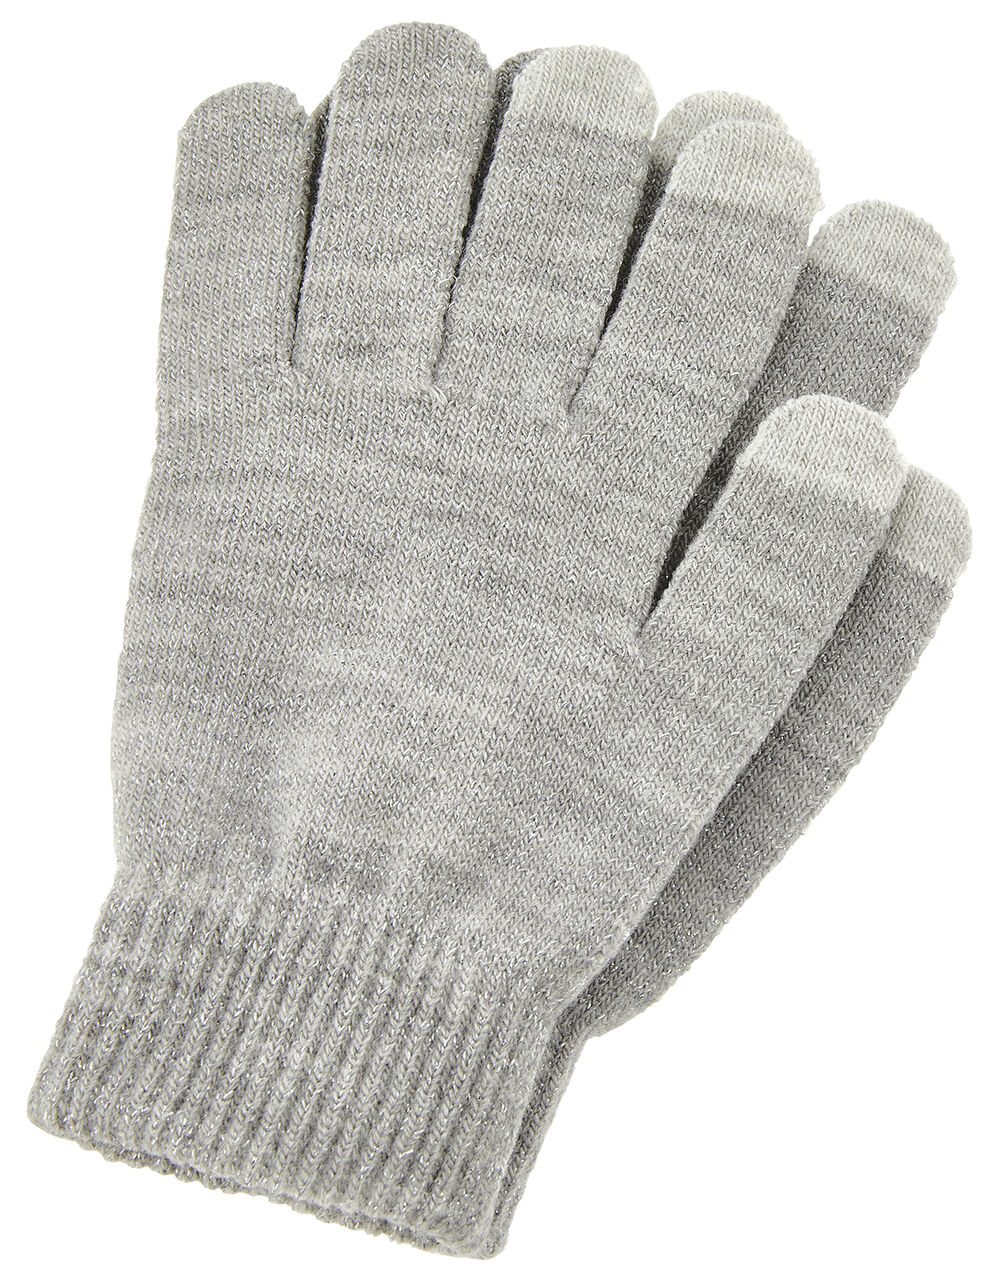 Shimmer Knit Touchscreen Gloves, , large